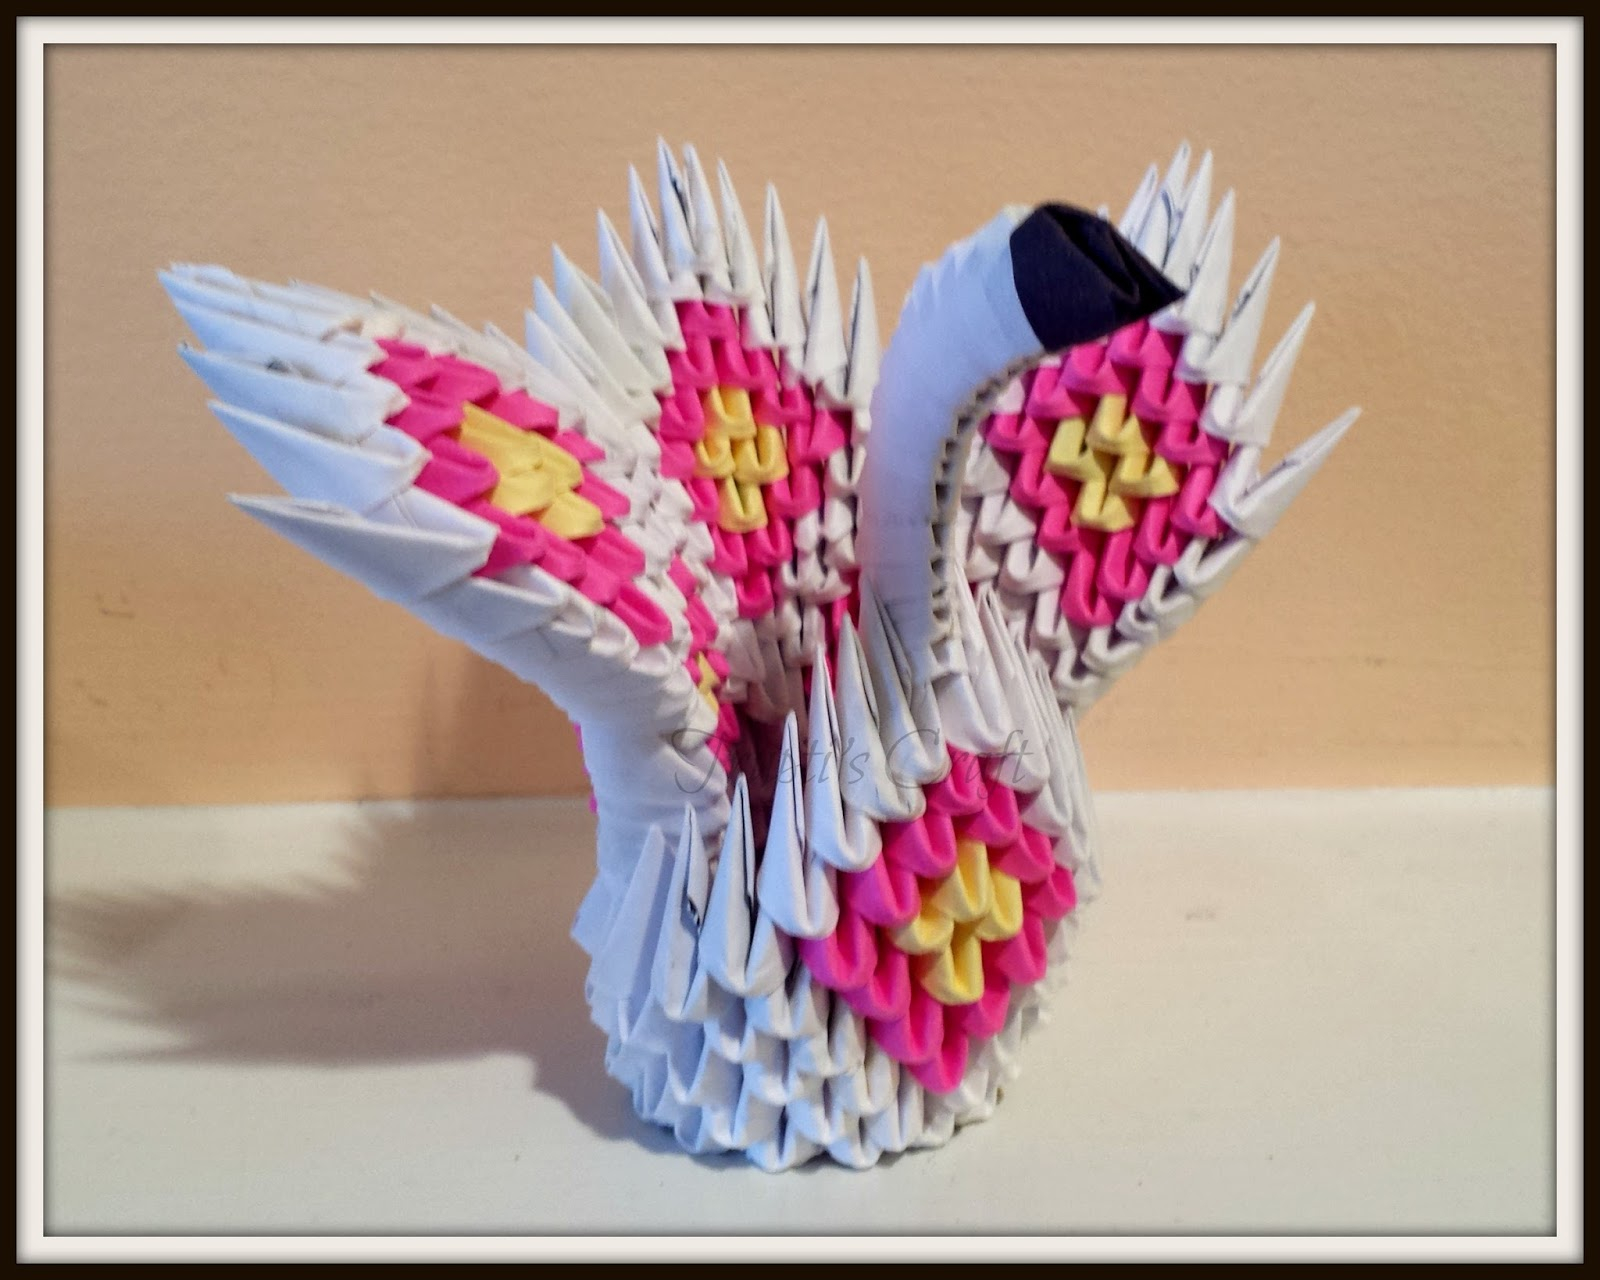 How To Make An Origami 3D Swan Truptis Craft 3d Origami Mini Swan